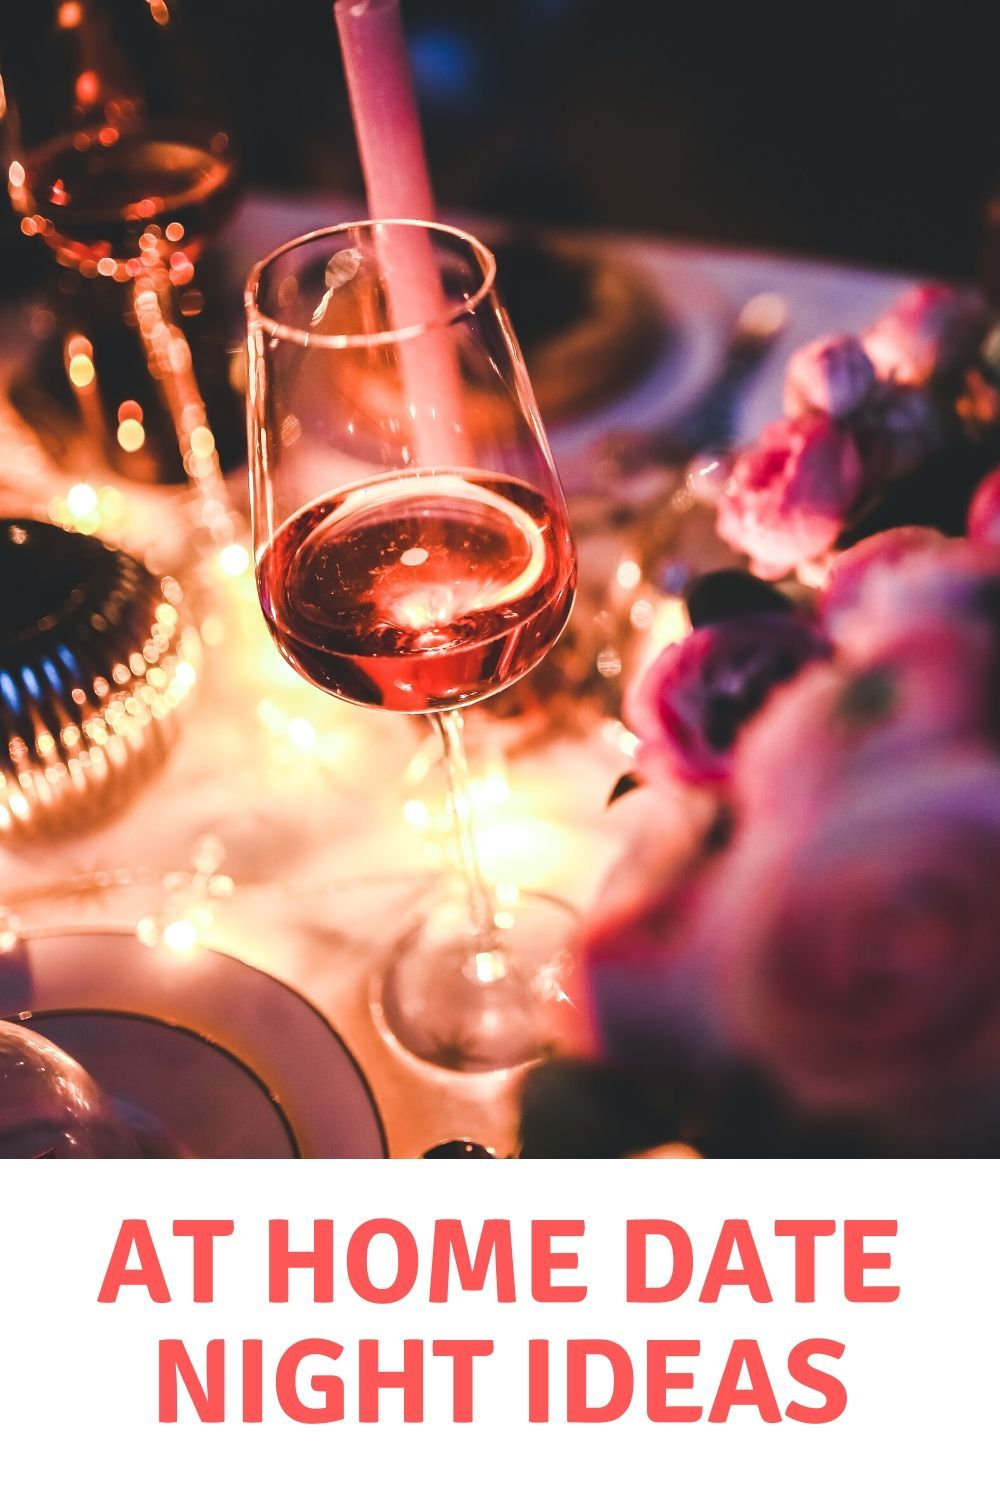 Date Night Ideas In 2020 Wine Vacation Romantic Night Winter Date Ideas